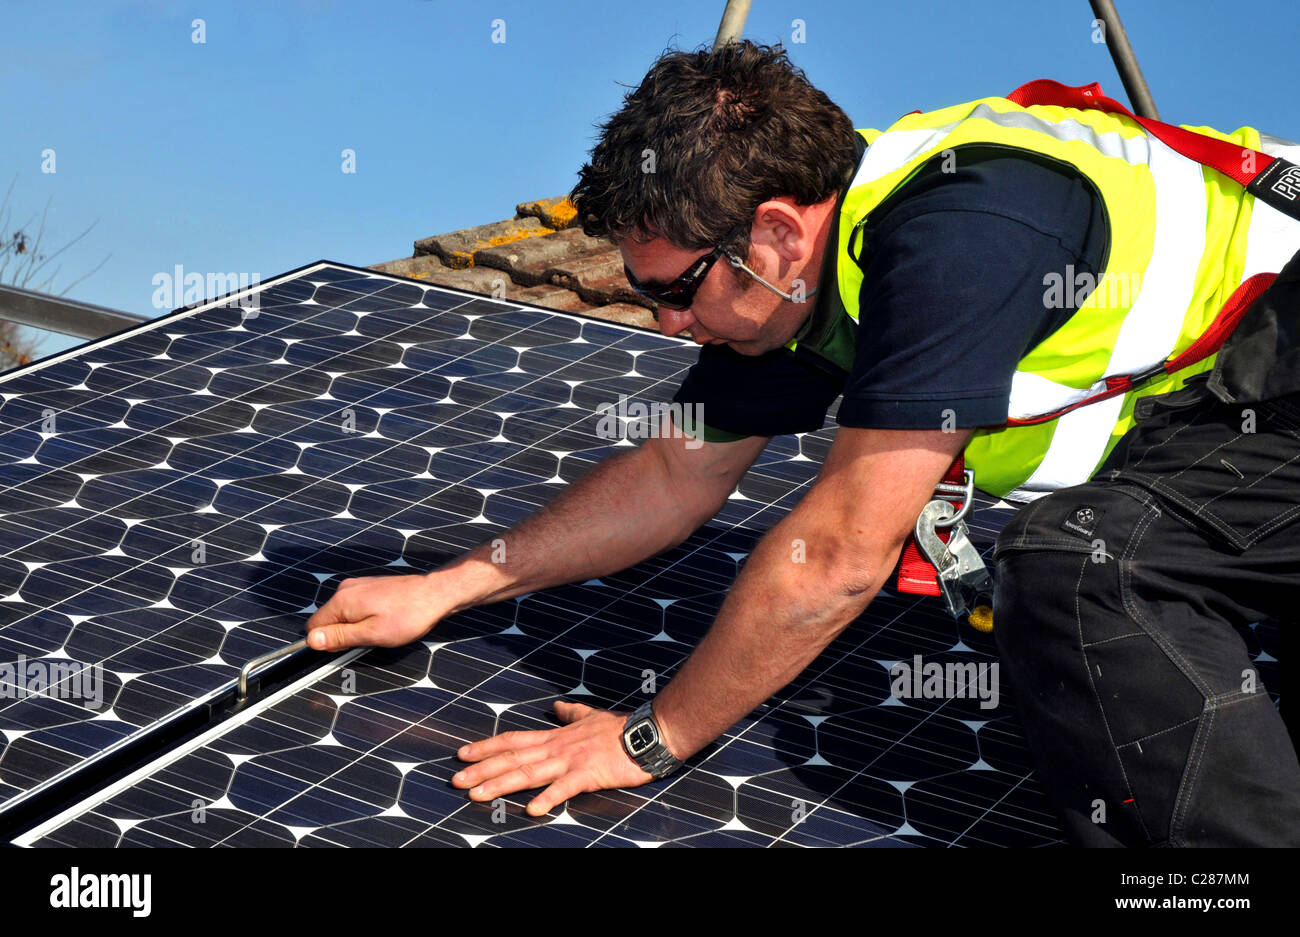 Solar panels being installed on a house roof, Britain, UK - Stock Image